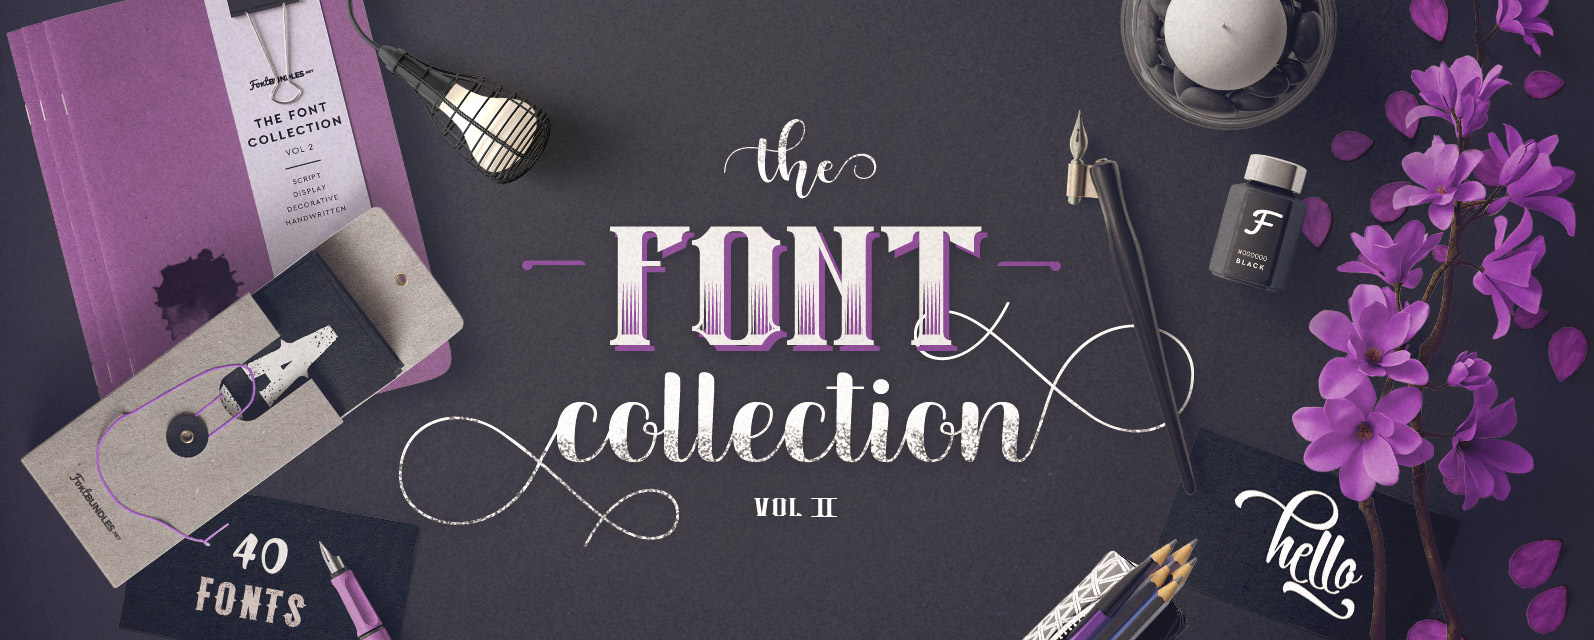 Font Collection Volume II Cover